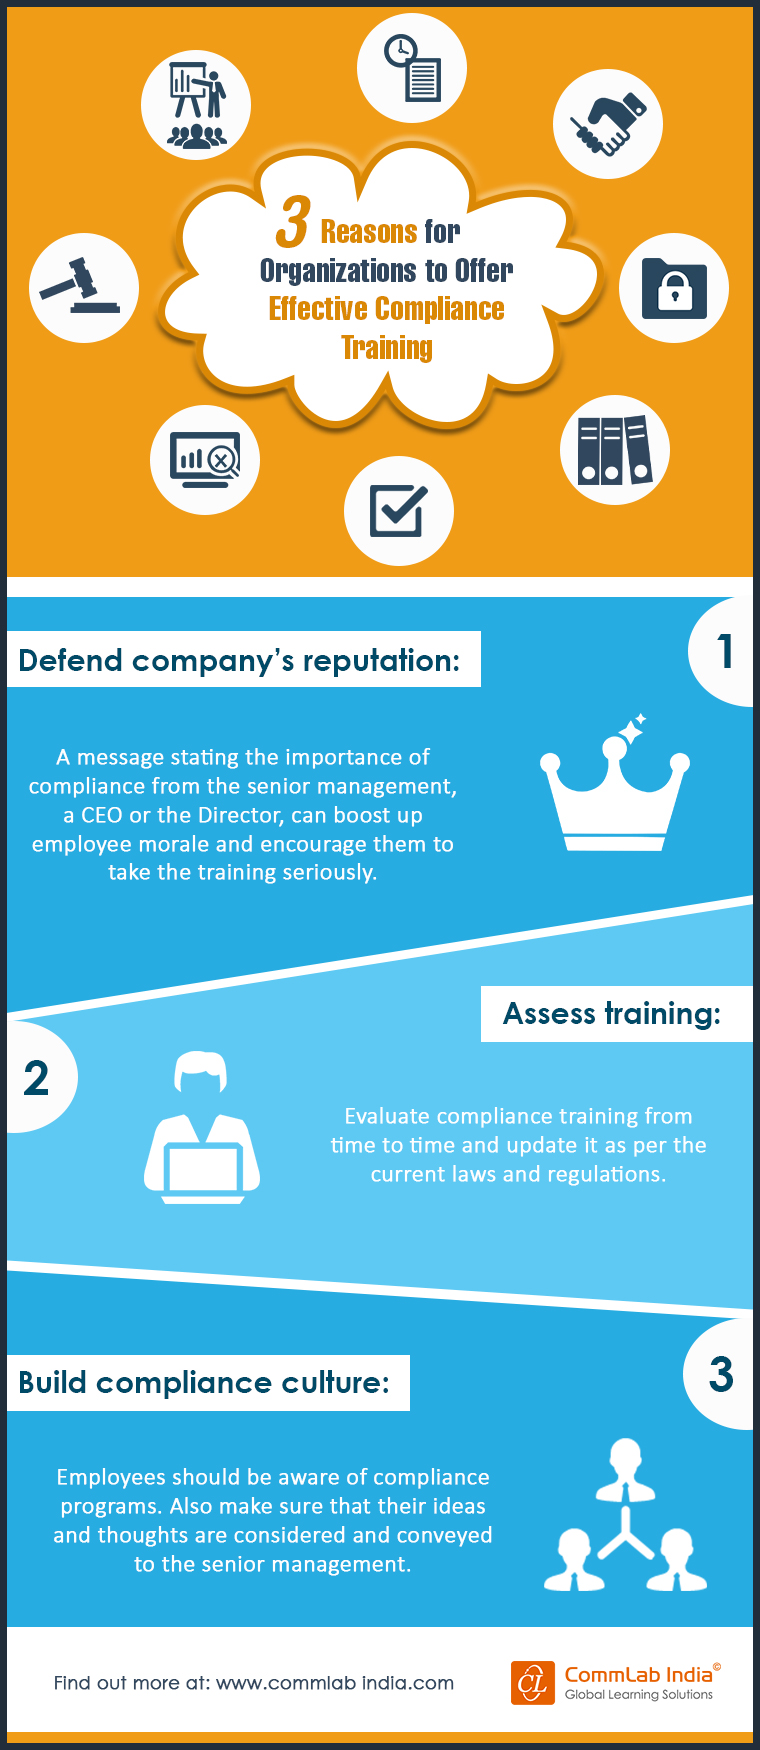 3 Reasons for Organizations to Offer Effective Compliance Training [Infographic]